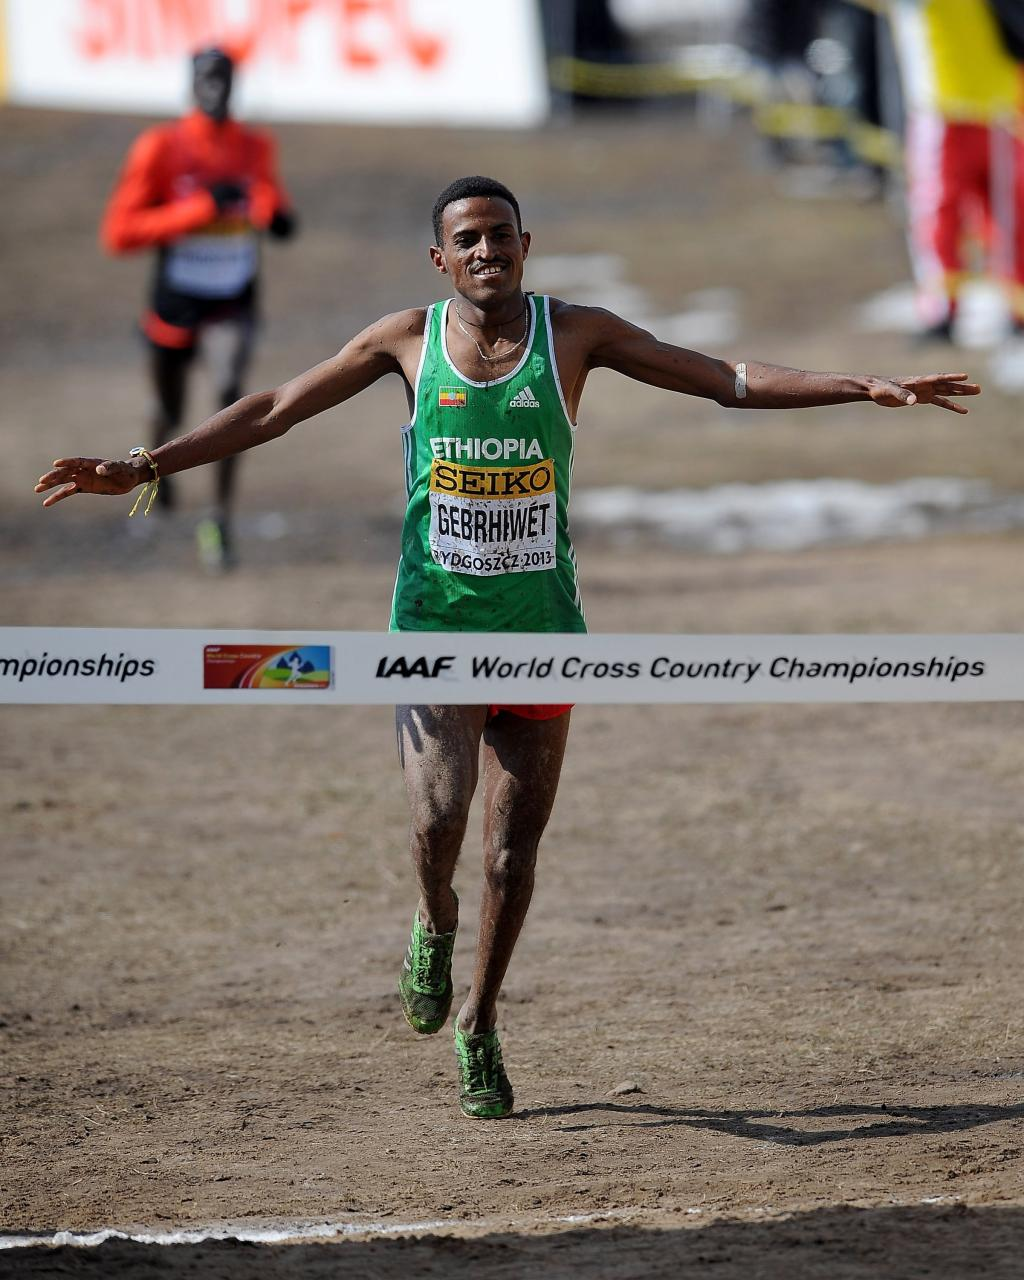 The 2017 World Cross Country Championships is among the flagship events that the IAAF is looking to attract bidders for